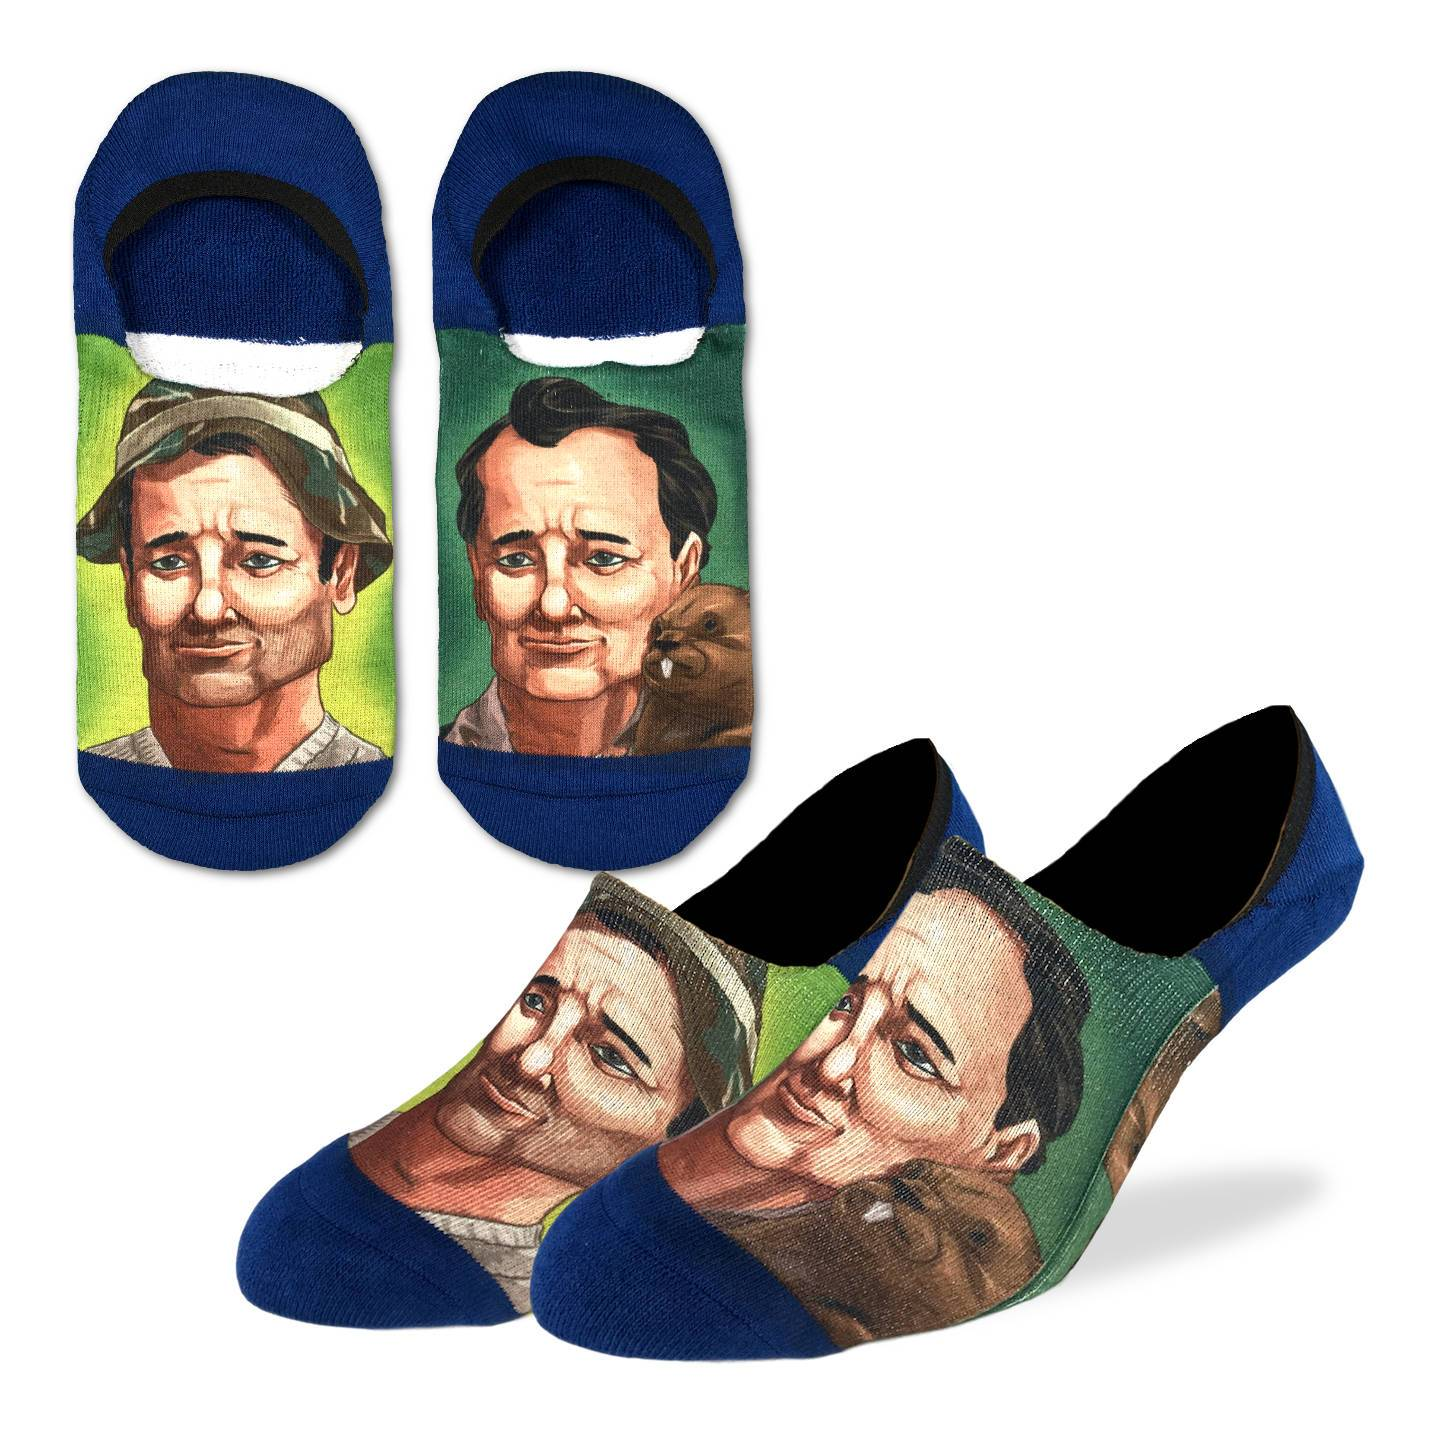 Men's Bill Murray No Show Socks - Good Luck Sock